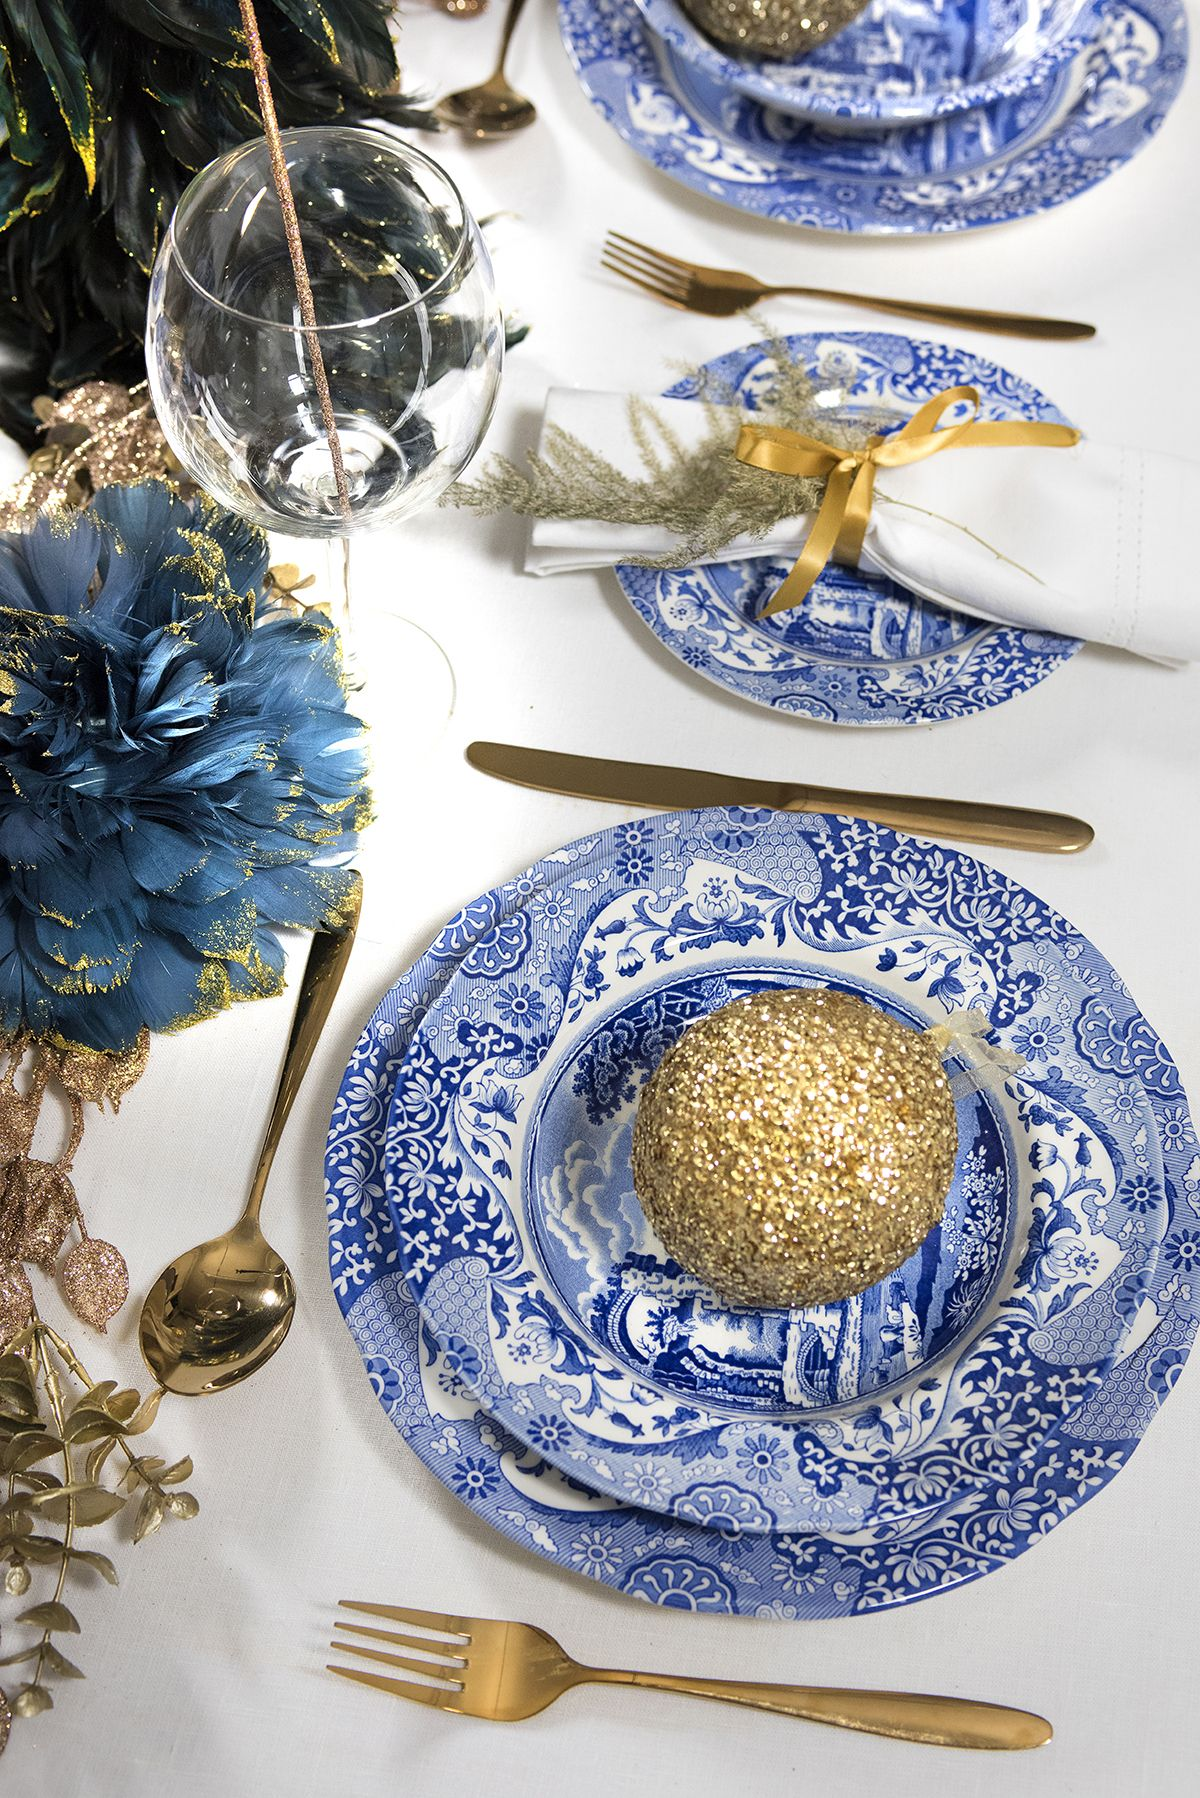 Spode Blue Italian Is A Timeless Classic Steeped In History Add A Touch Of Classic British Style To Your Table Vintage Tea Parties Christmas Dining Tableware